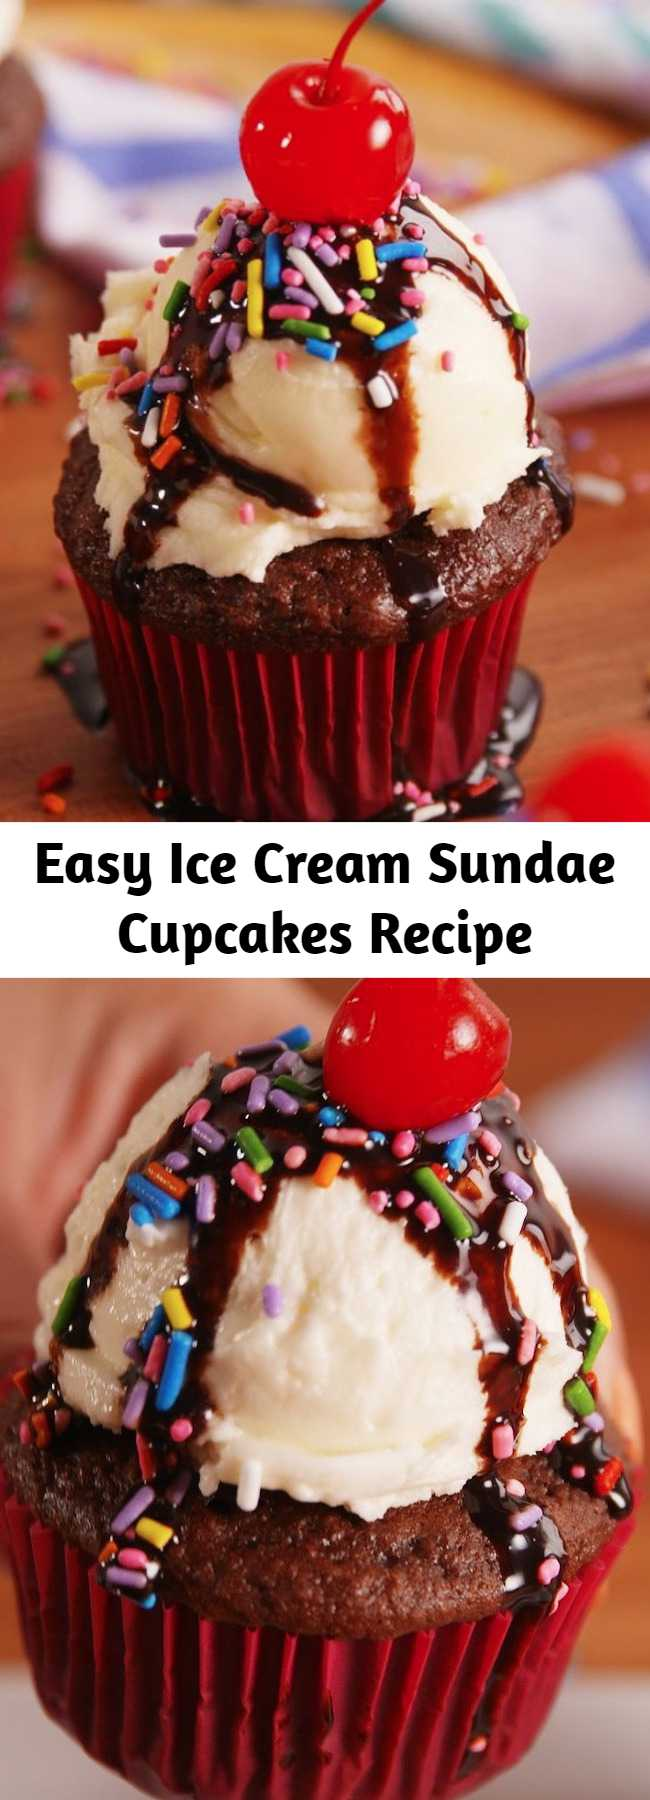 Easy Ice Cream Sundae Cupcakes Recipe - Your inner child called and specifically asked for you to make these immediately. Get ready for a sugar rush.